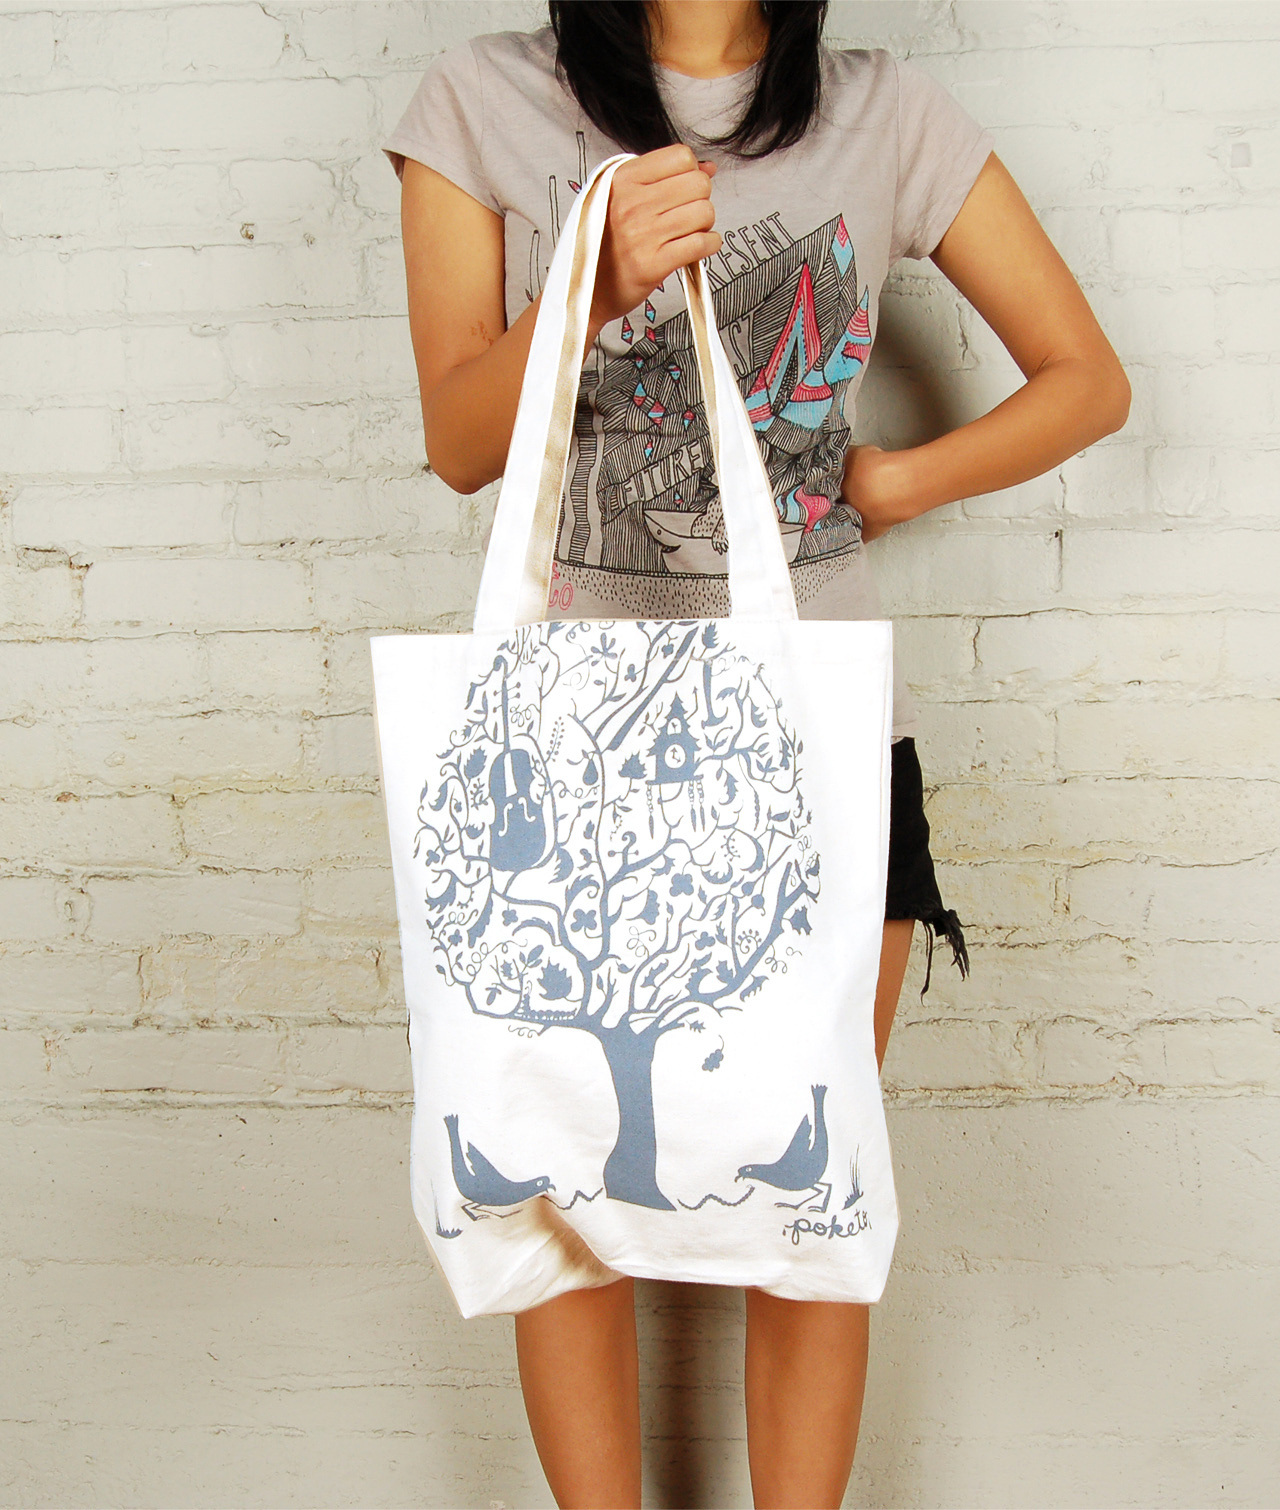 Totebag for Poketo